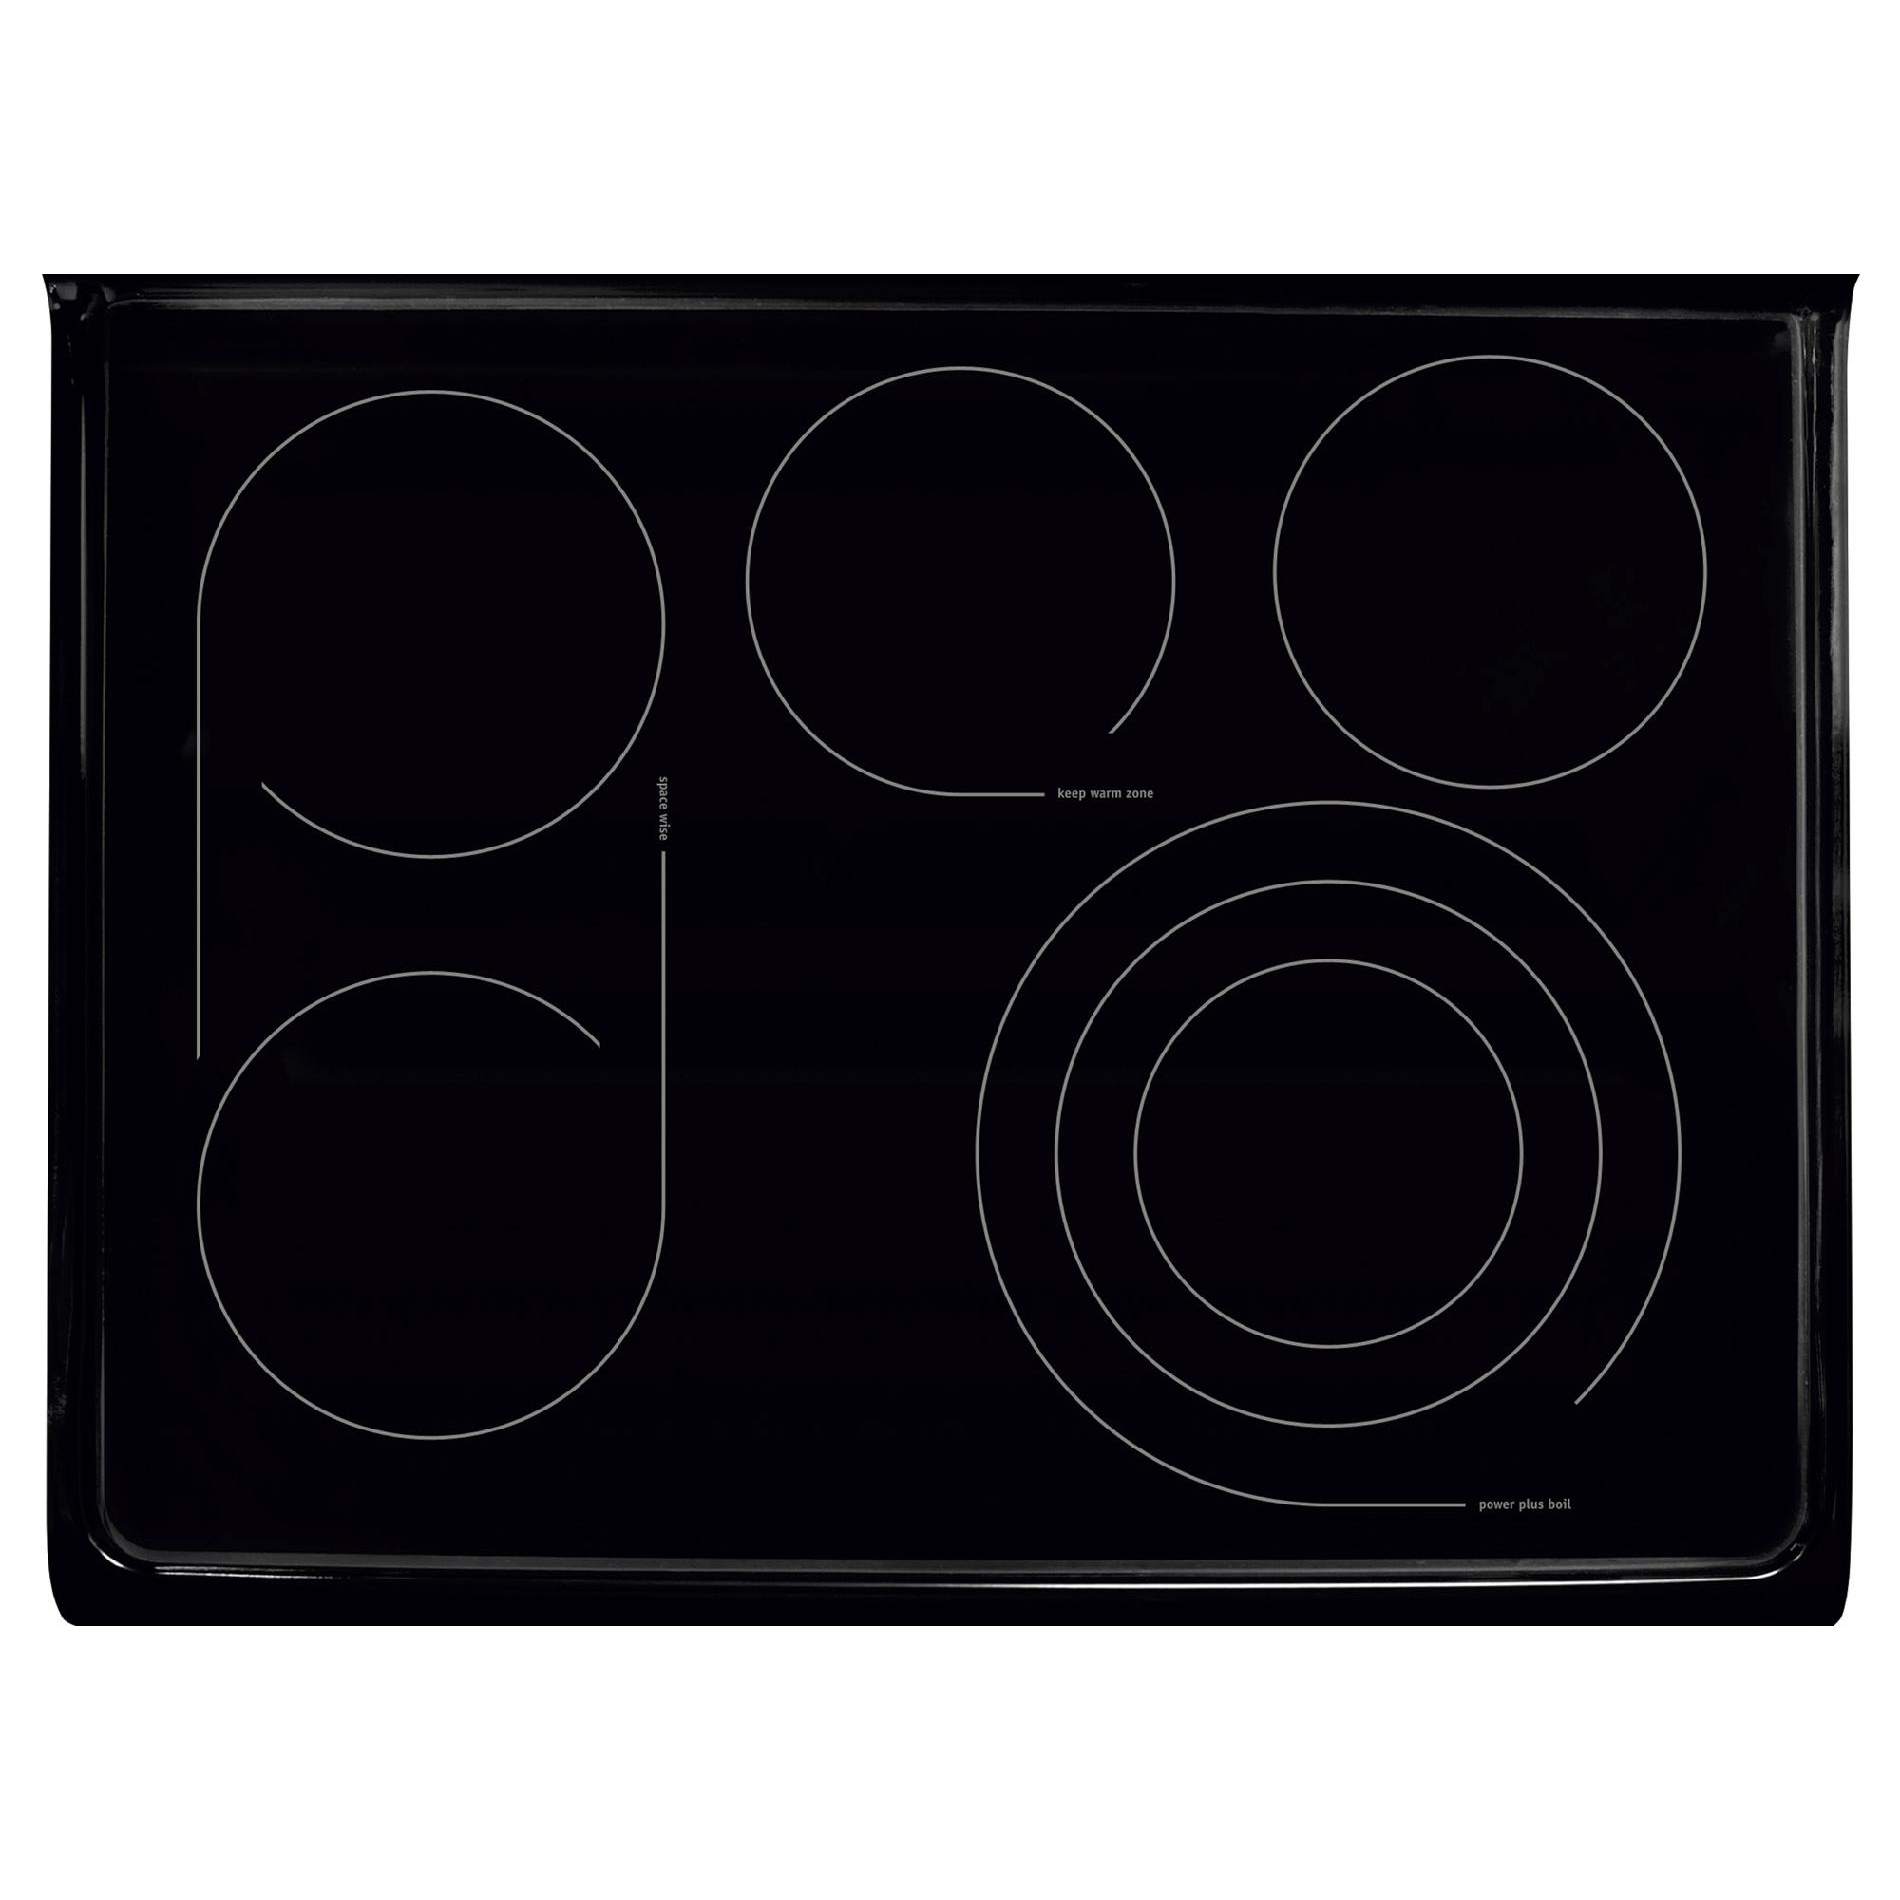 Frigidaire Professional 6 cu. ft. Electric Range - Stainless Steel